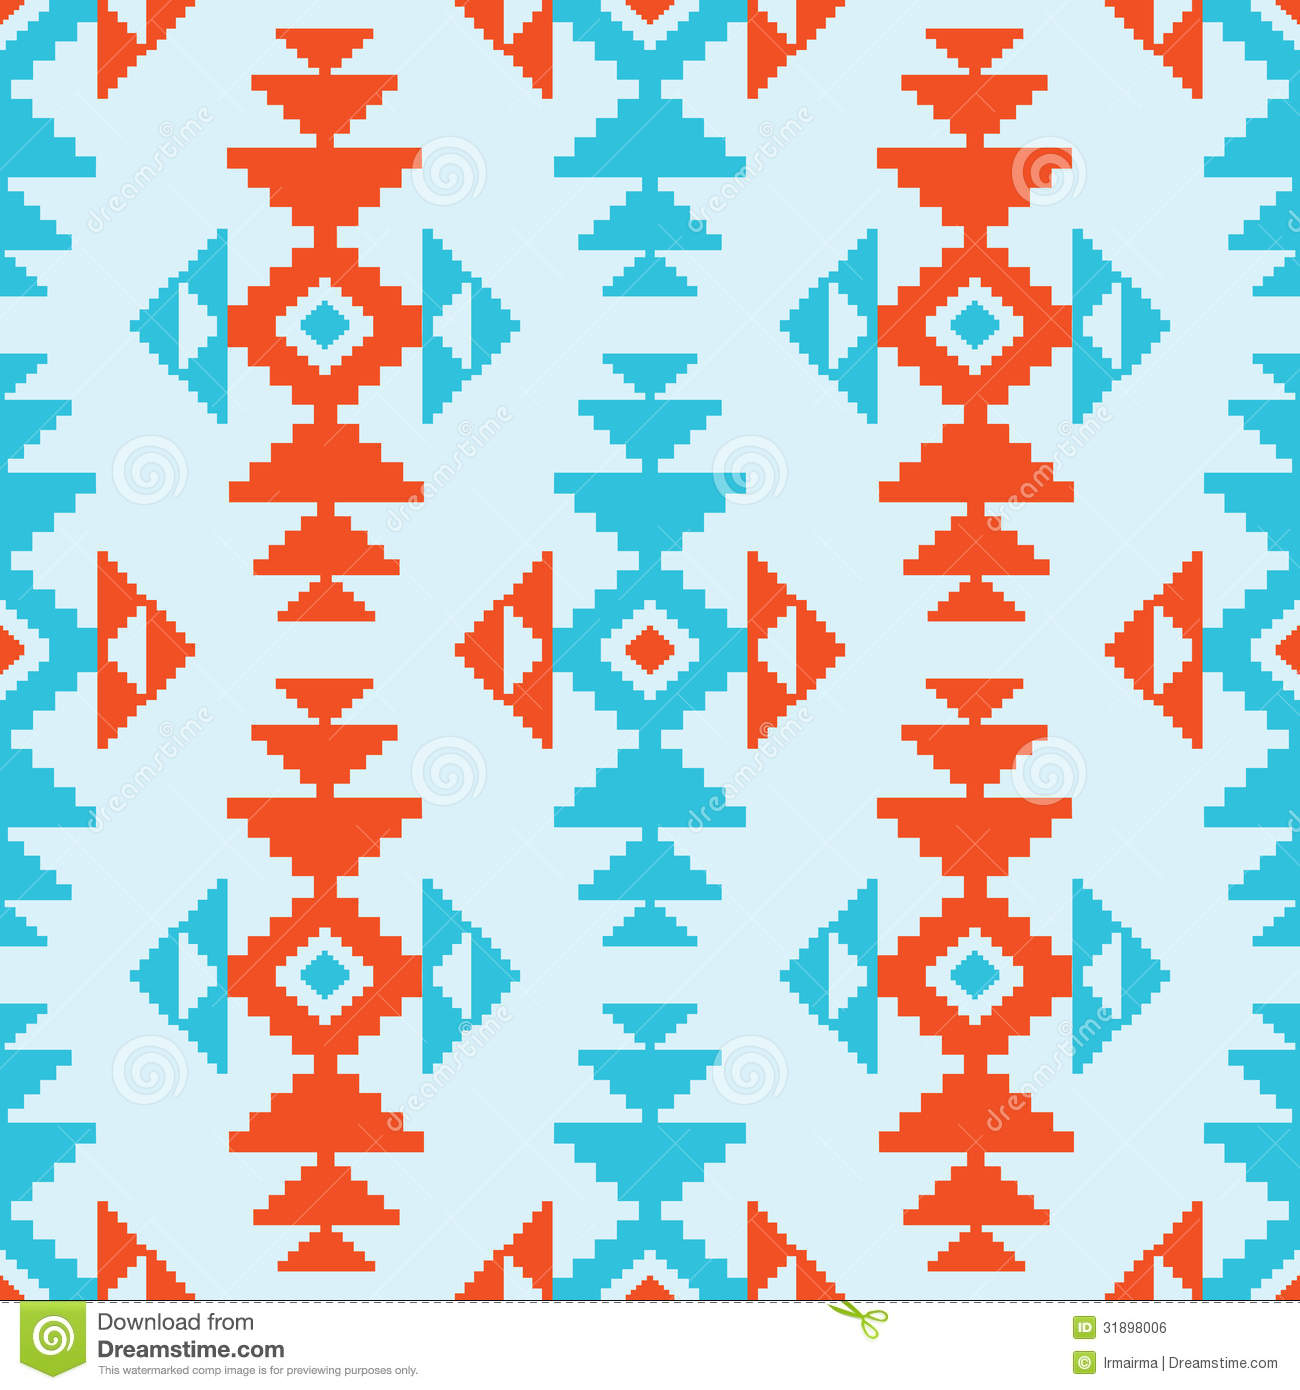 Native American Design Wallpaper : American indian pattern royalty free stock image